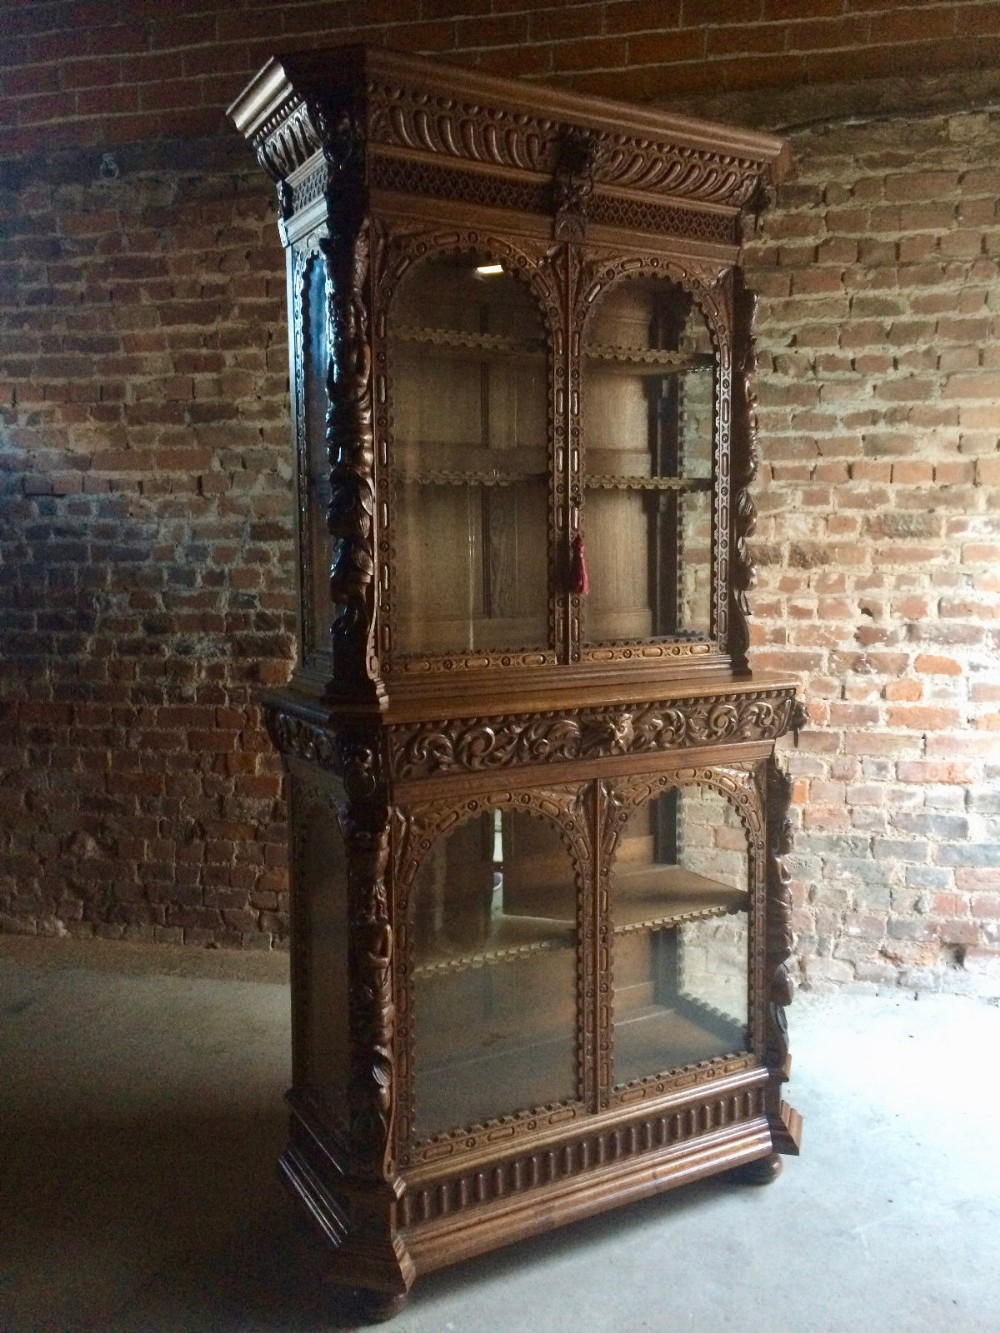 french oak display cabinet carved victorian gothic antique 19th century - French Oak Display Cabinet Carved Victorian Gothic Antique 19th